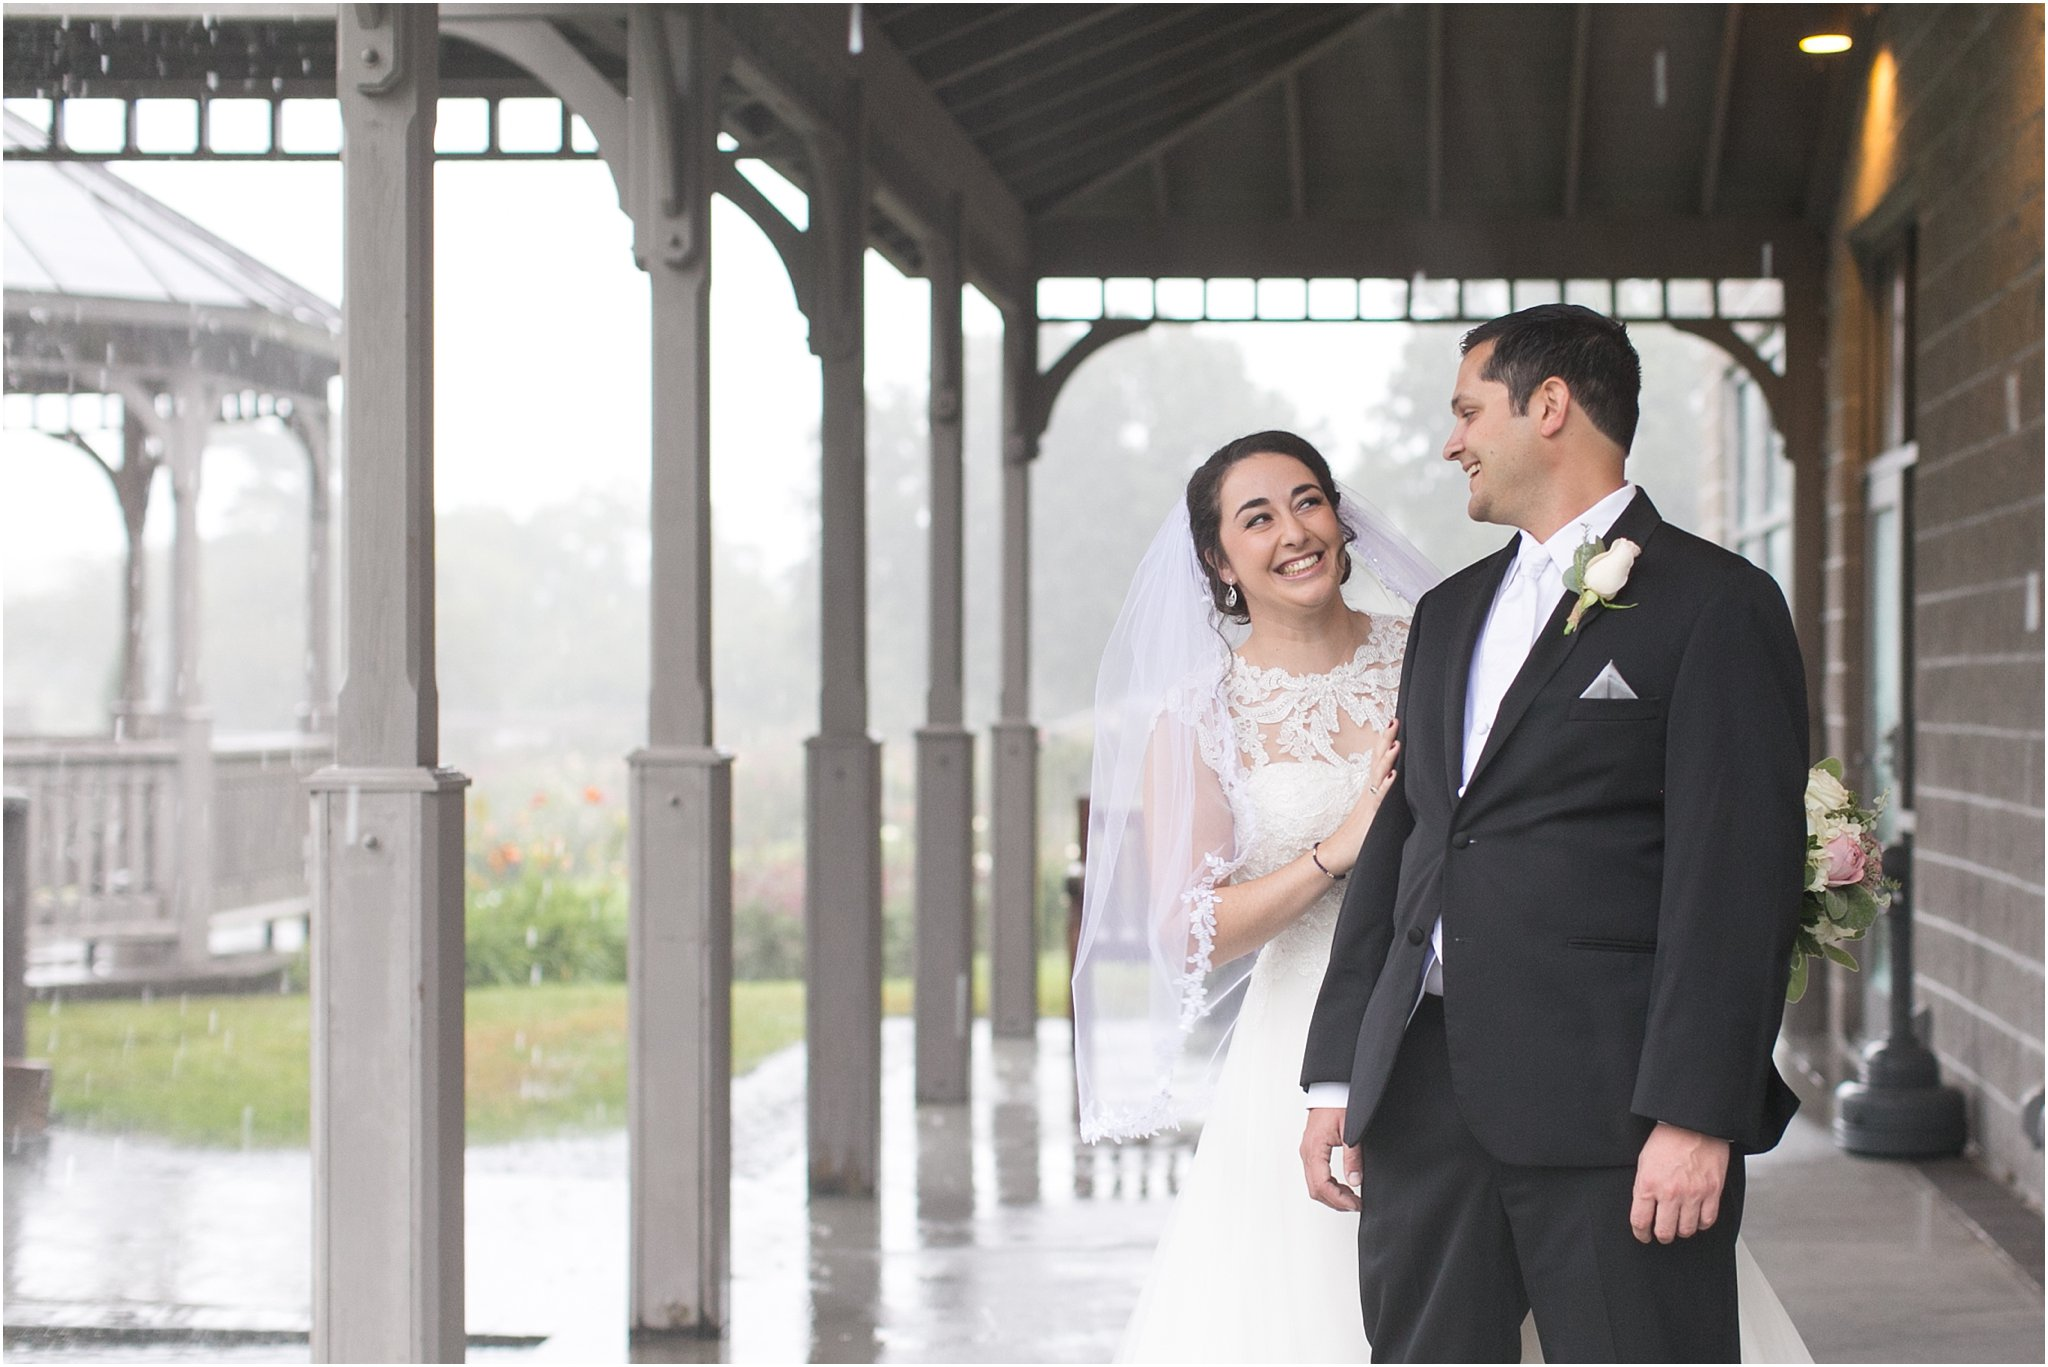 jessica_ryan_photography_virginia_wedding_photographer_wedding_hurricane_norfolk_botanical_gardens_hurricane_matthew_wedding_3562